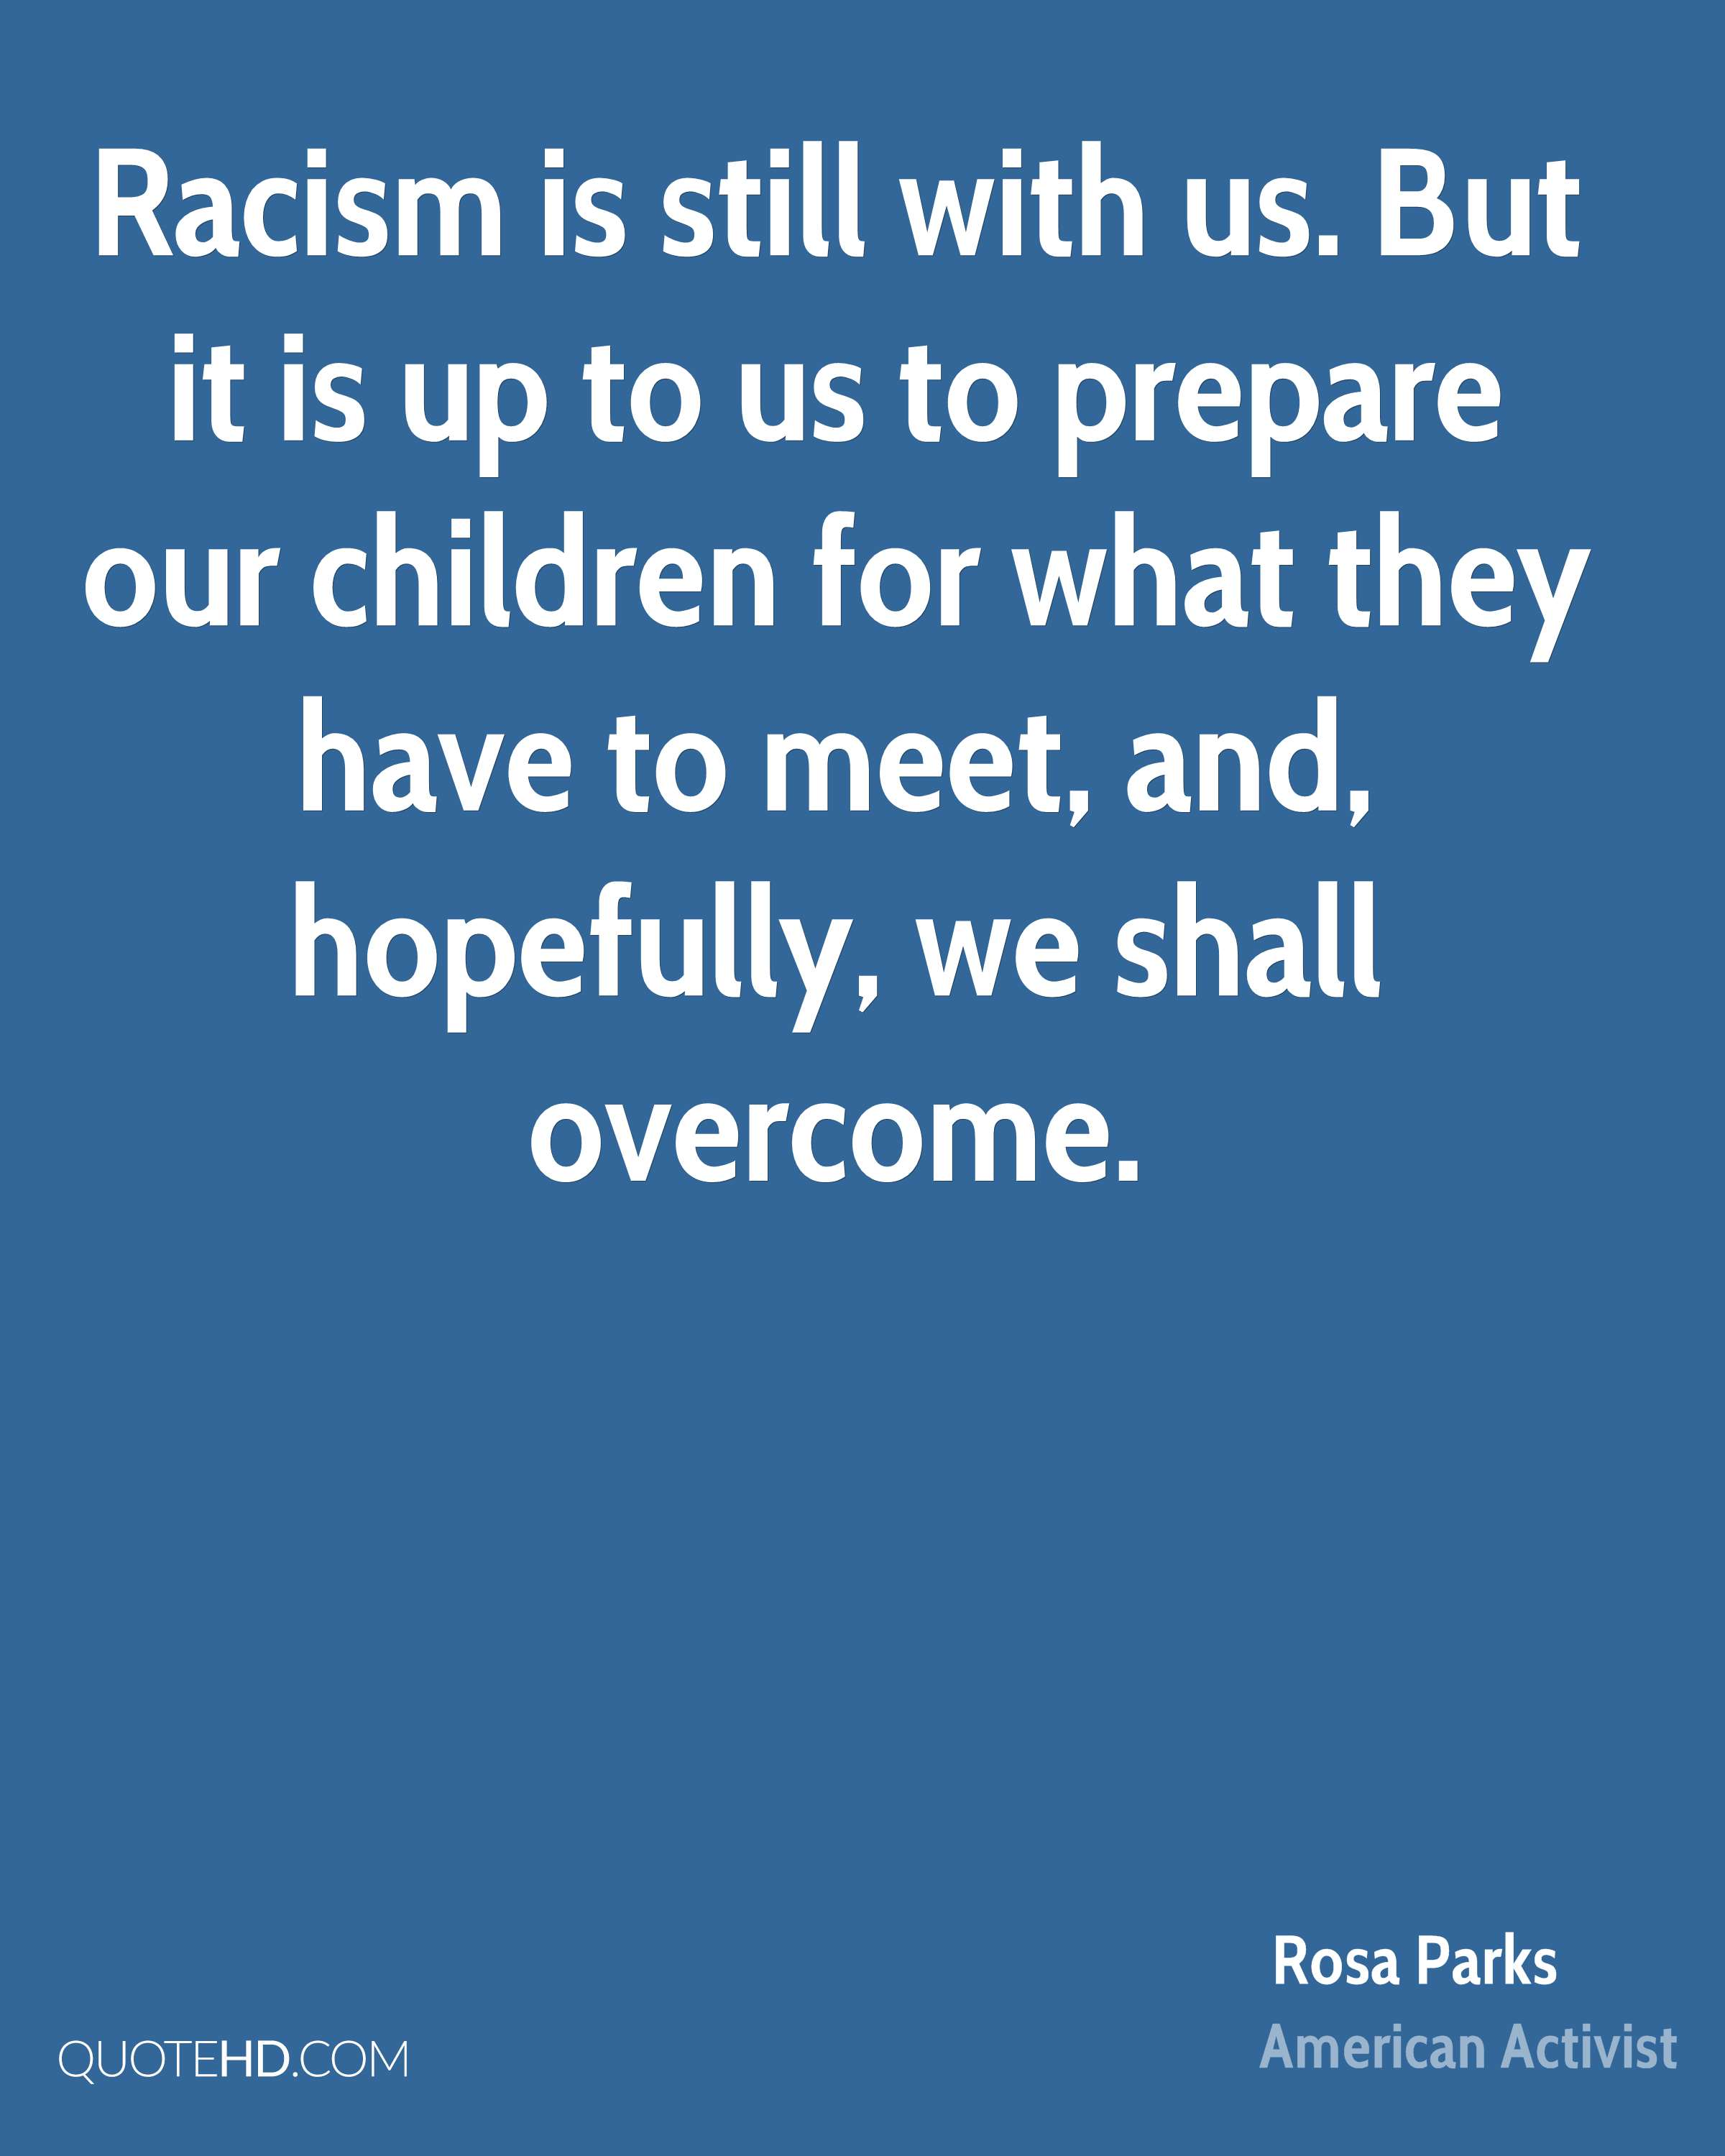 Racism is still with us. But it is up to us to prepare our children for what they have to meet, and, hopefully, we shall overcome.